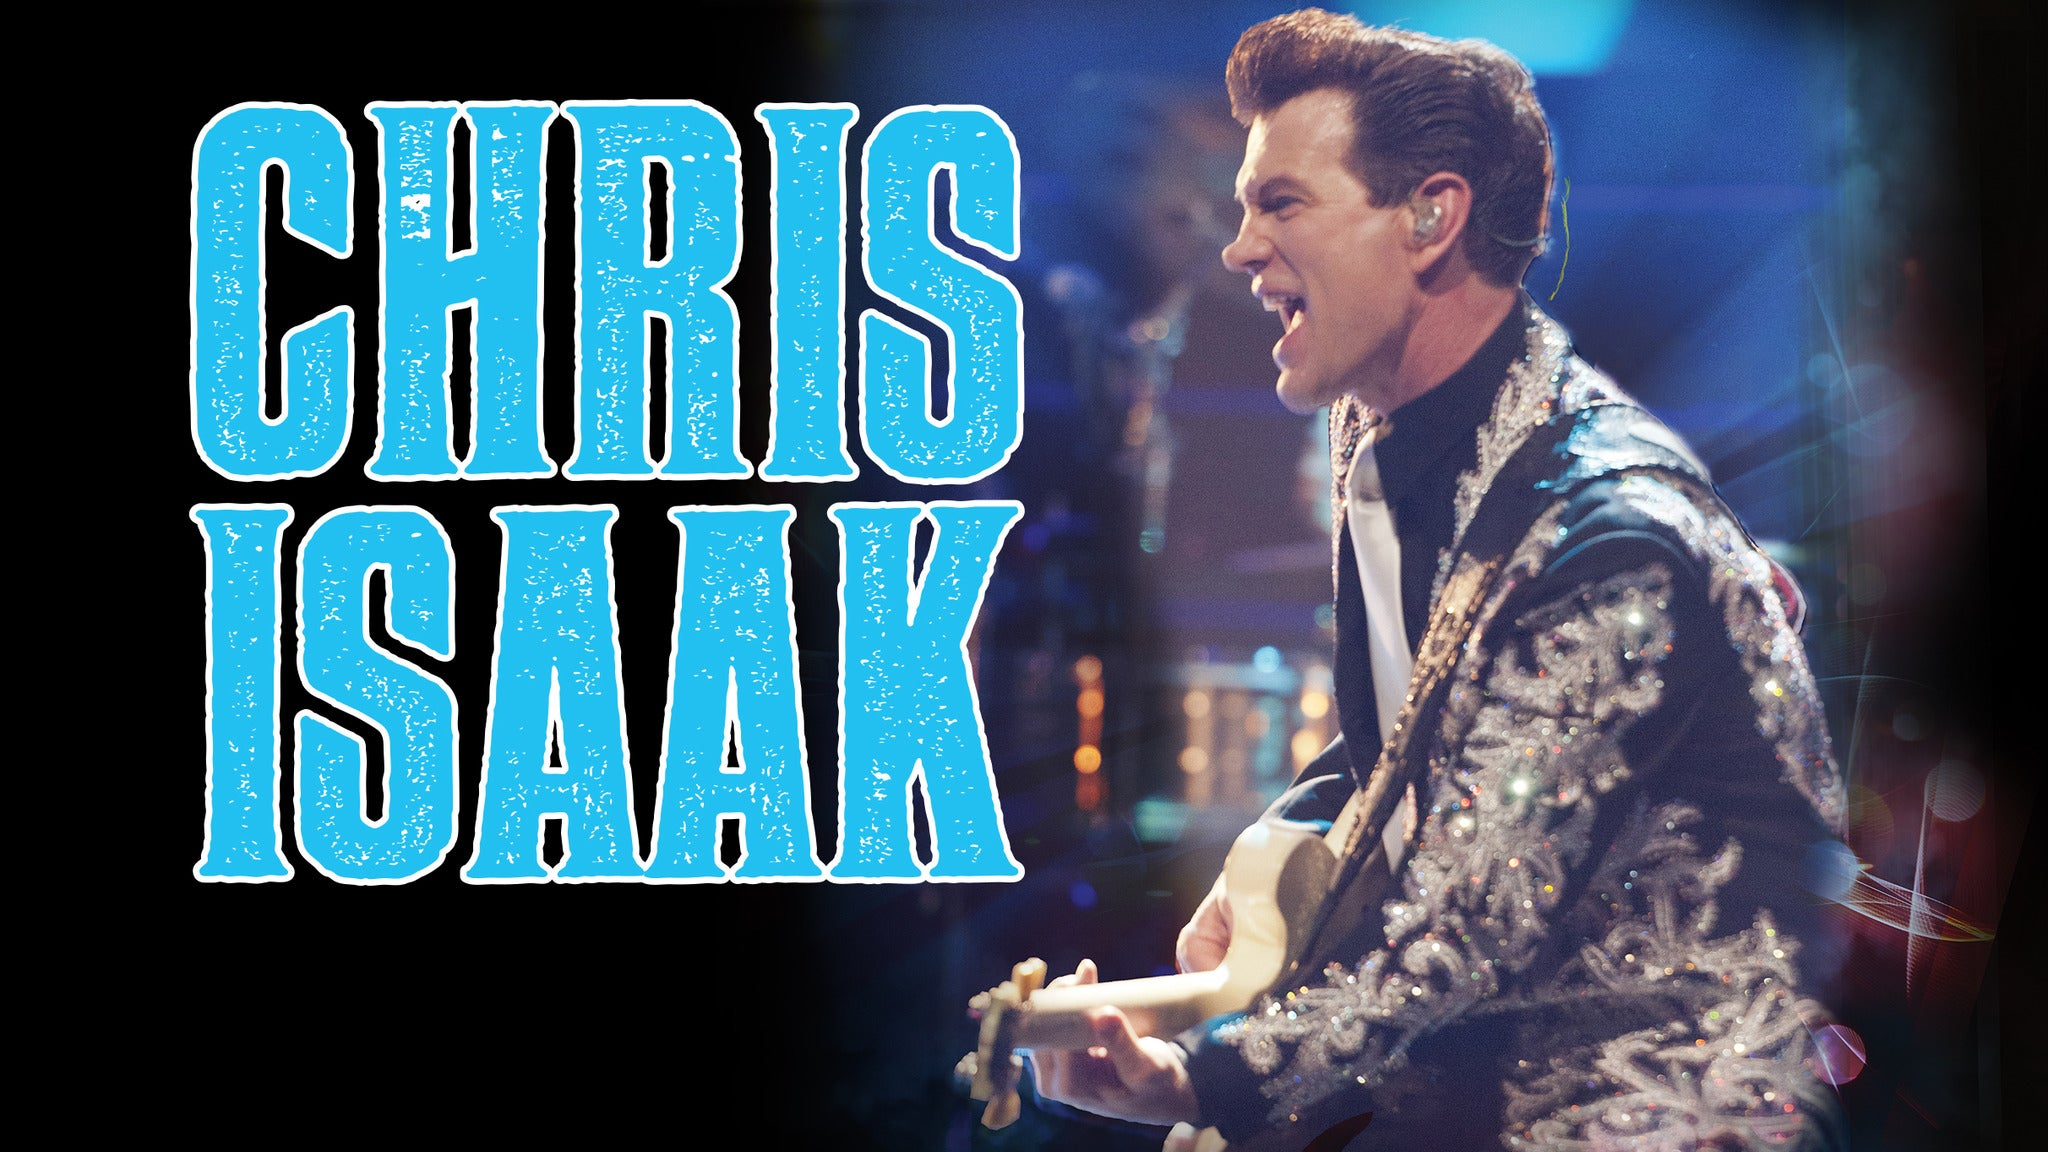 Chris Isaak - Meet & Greet Packages at Cheyenne Civic Center - Cheyenne, WY 82001